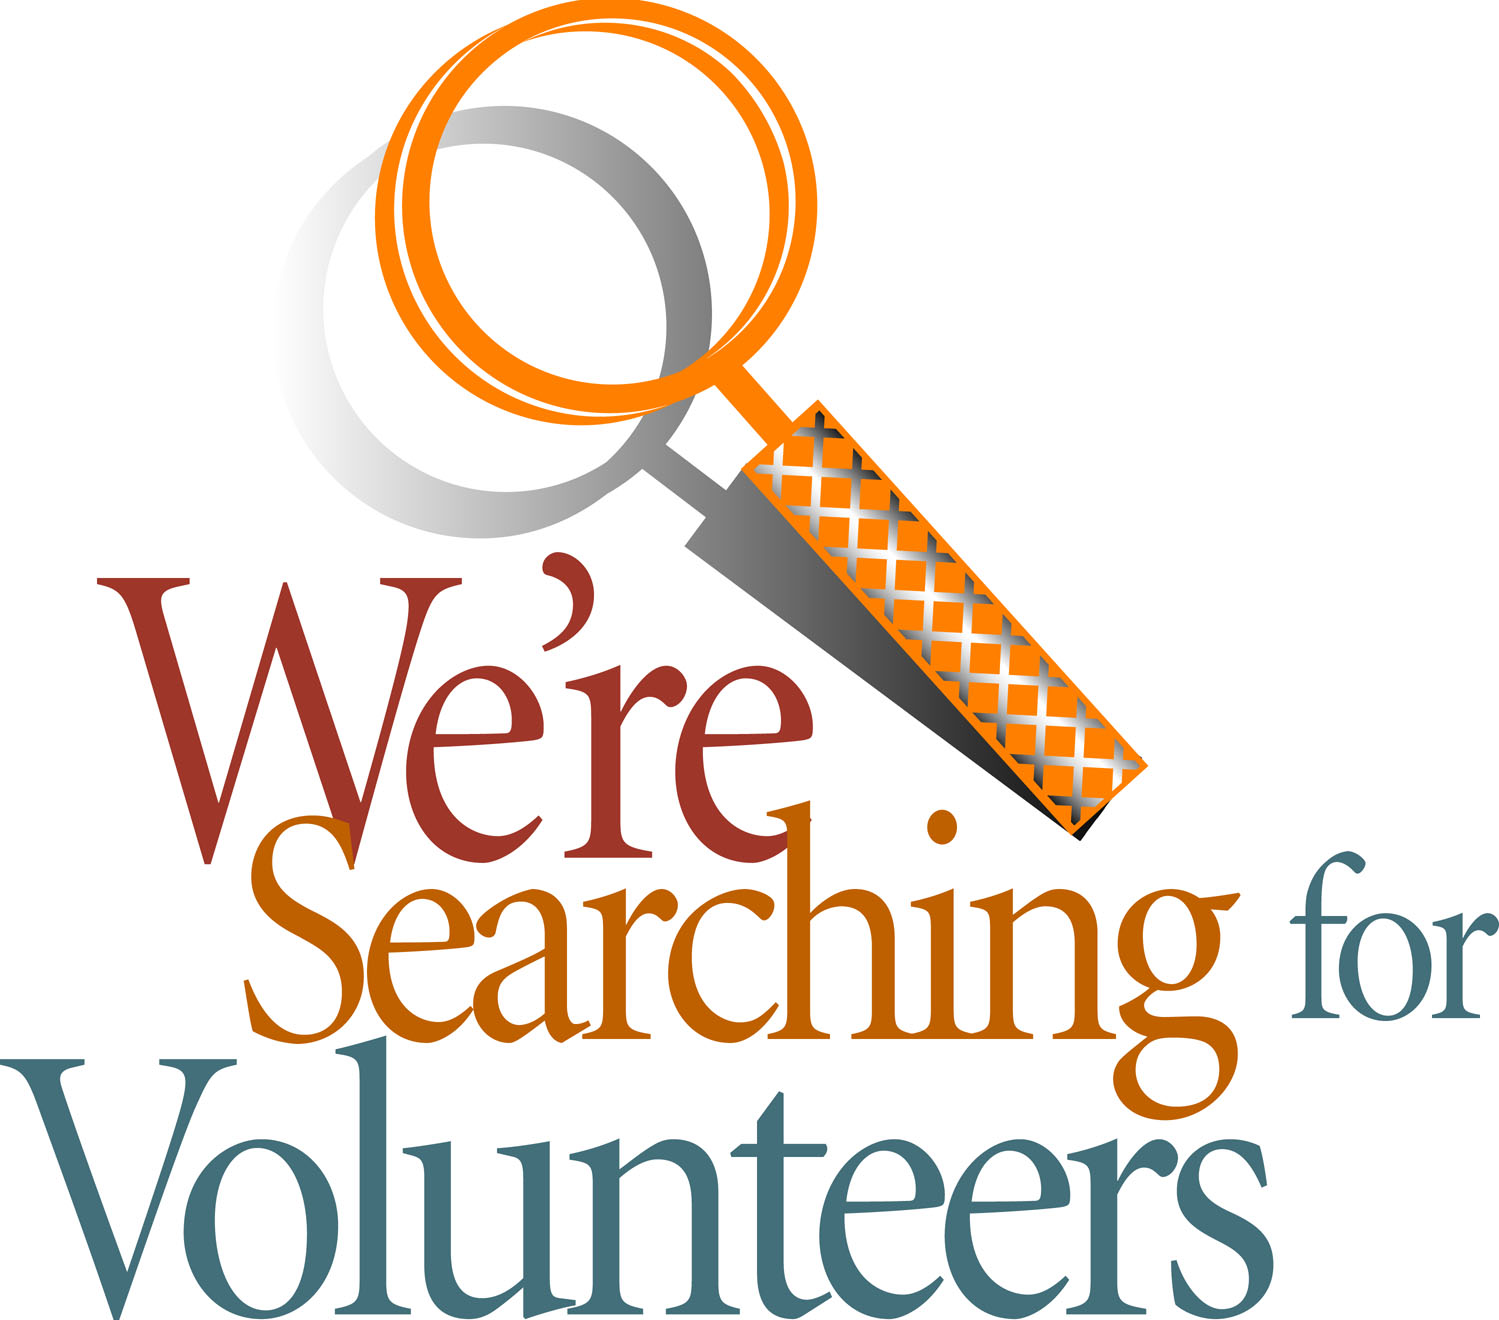 volunteers-search.jpg